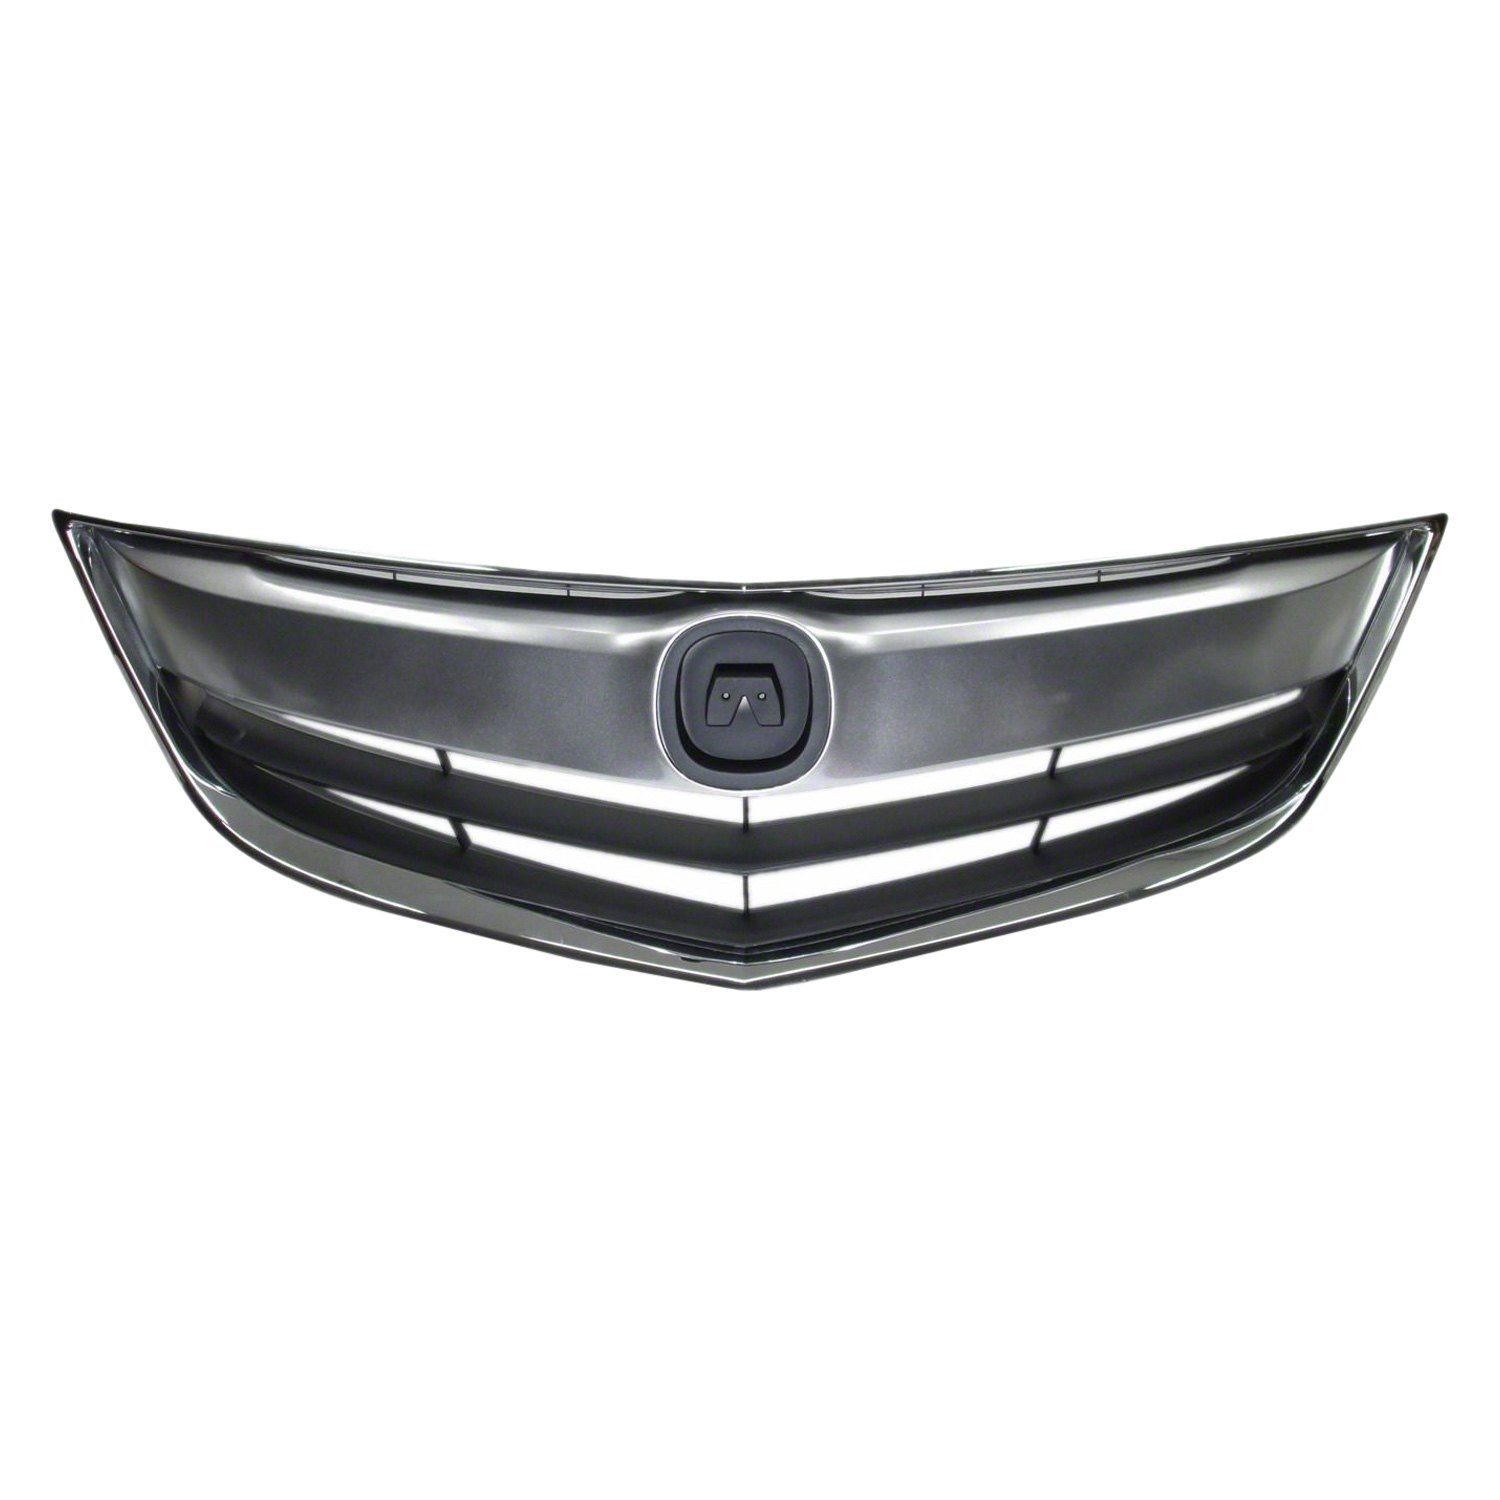 For Acura ILX 2013-2015 K-Metal 5122311 Grille